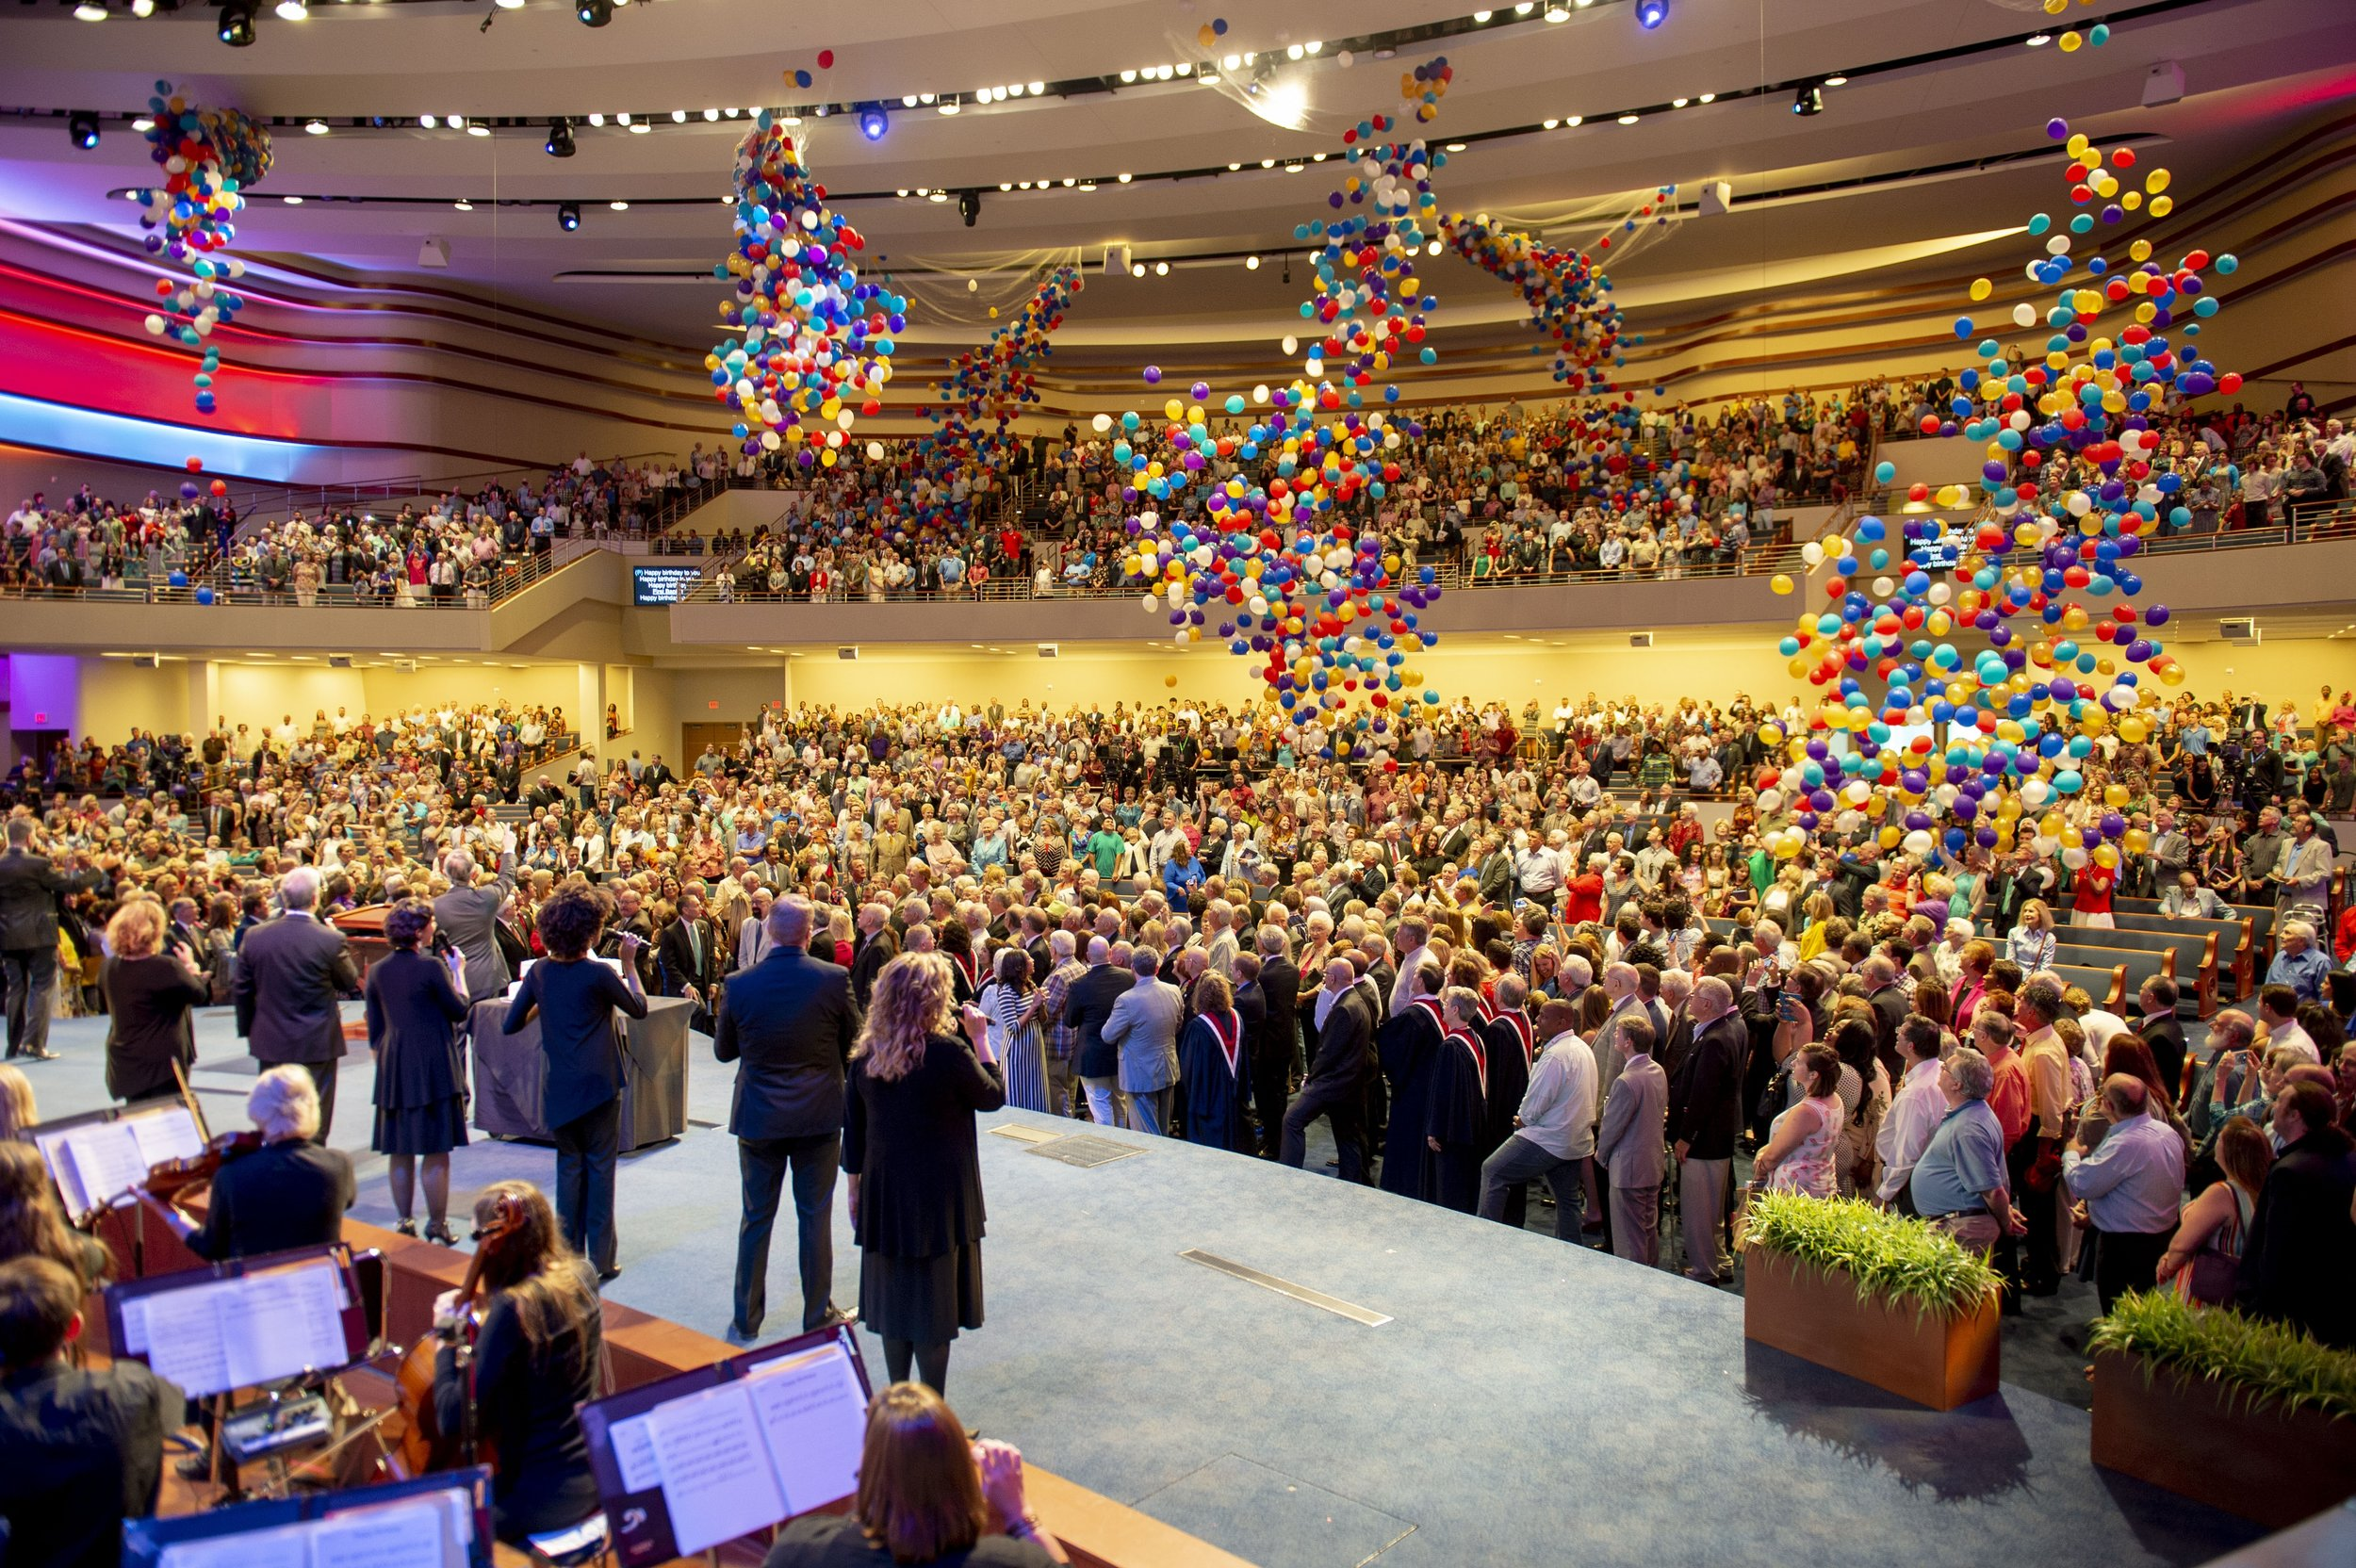 Balloons were released at the end of First Baptist Dallas' 150th Celebration Service.